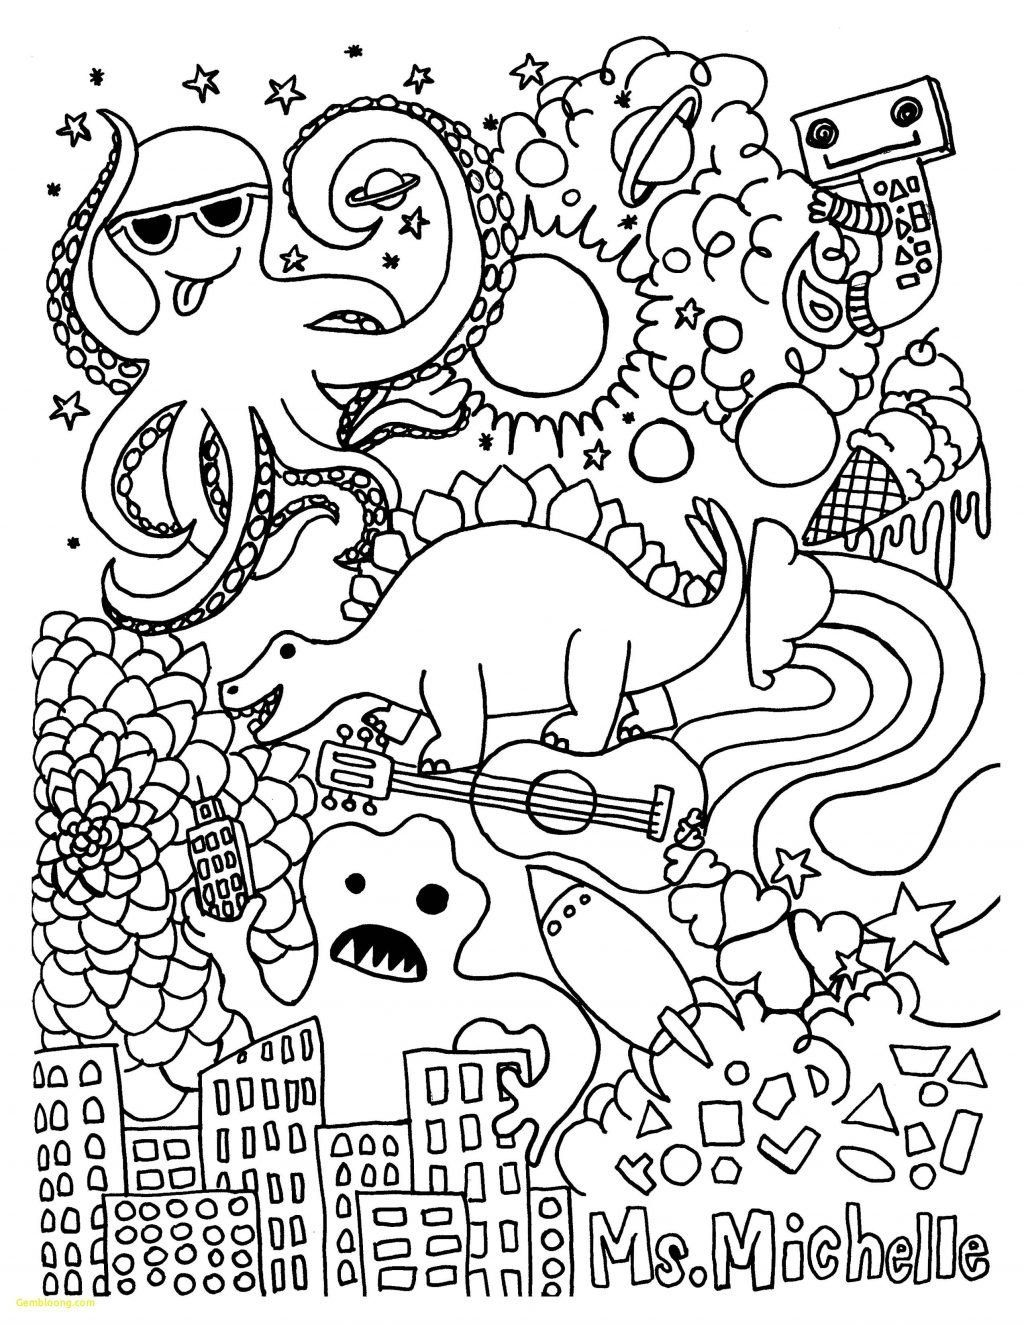 Coloring Pages For Teenagers Lovely Coloring Pages Coloring Books For Year Olds In Bulk Kids Coloring Pages Inspirational Mandala Coloring Pages Coloring Books